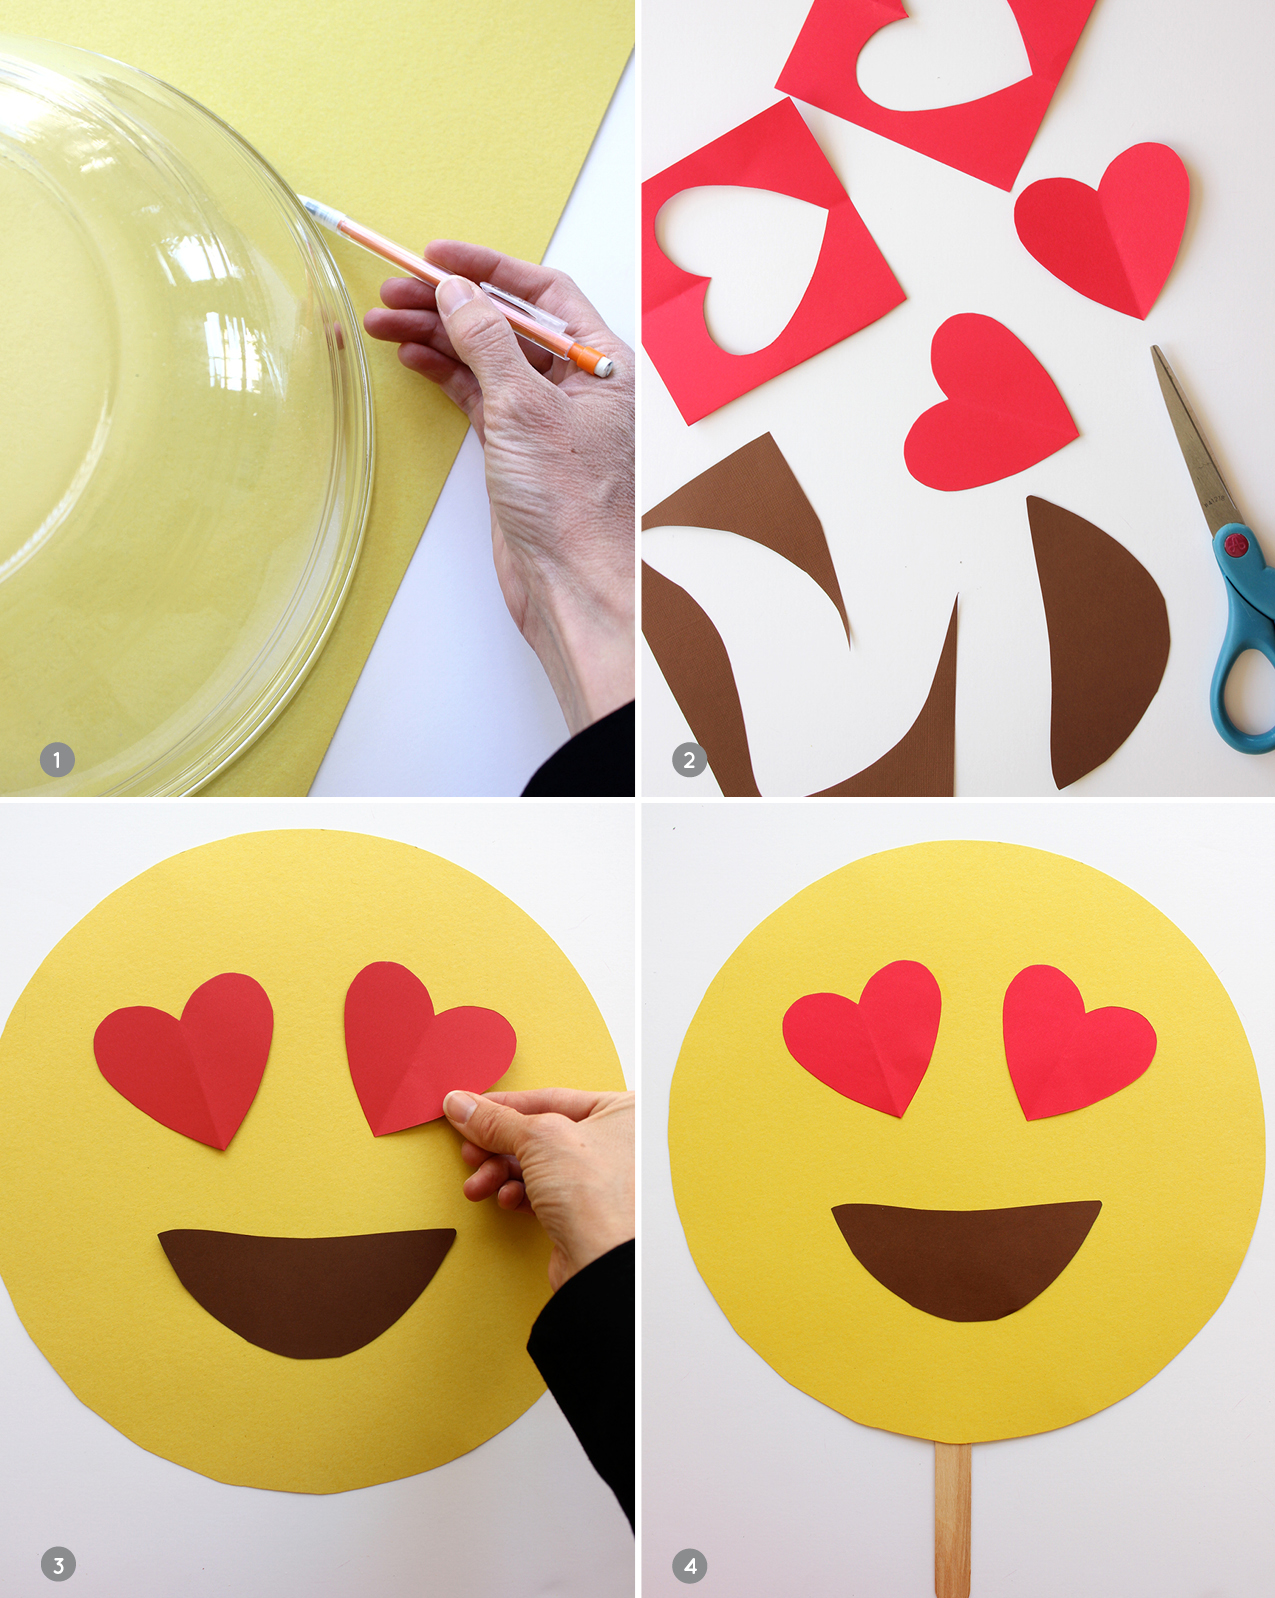 DIY-emoji-masks-steps